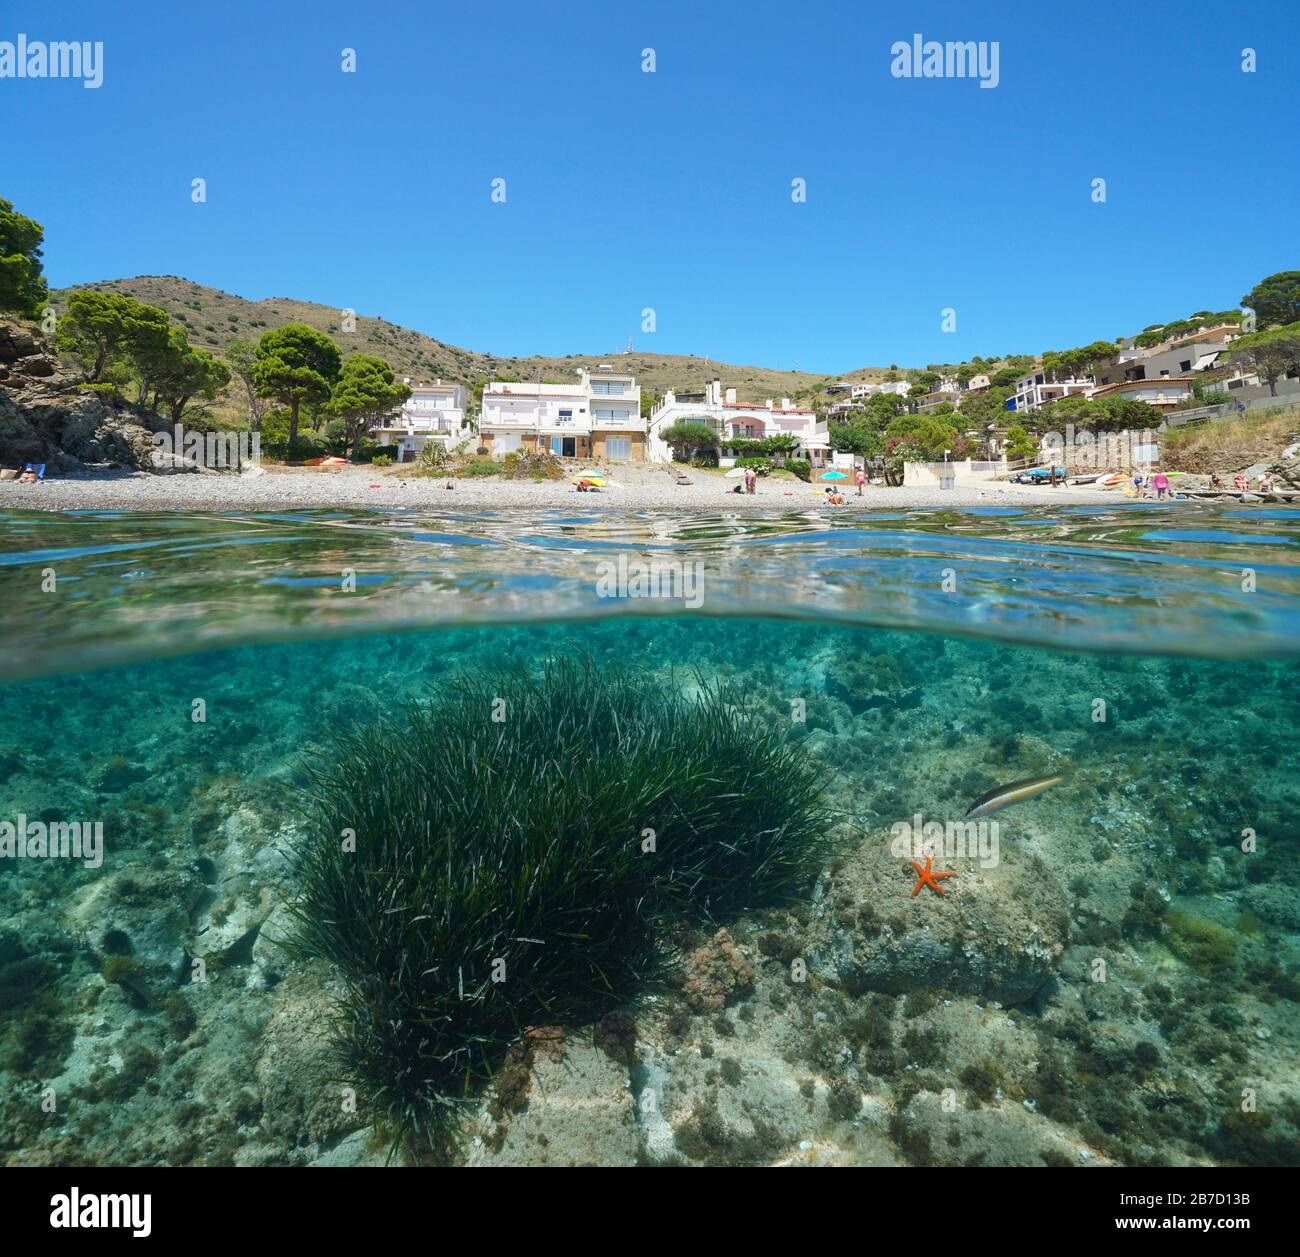 Spain Mediterranean sea summer vacations, beach coastline with buildings, split view over and under water surface, Costa Brava, Colera, Catalonia Stock Photo